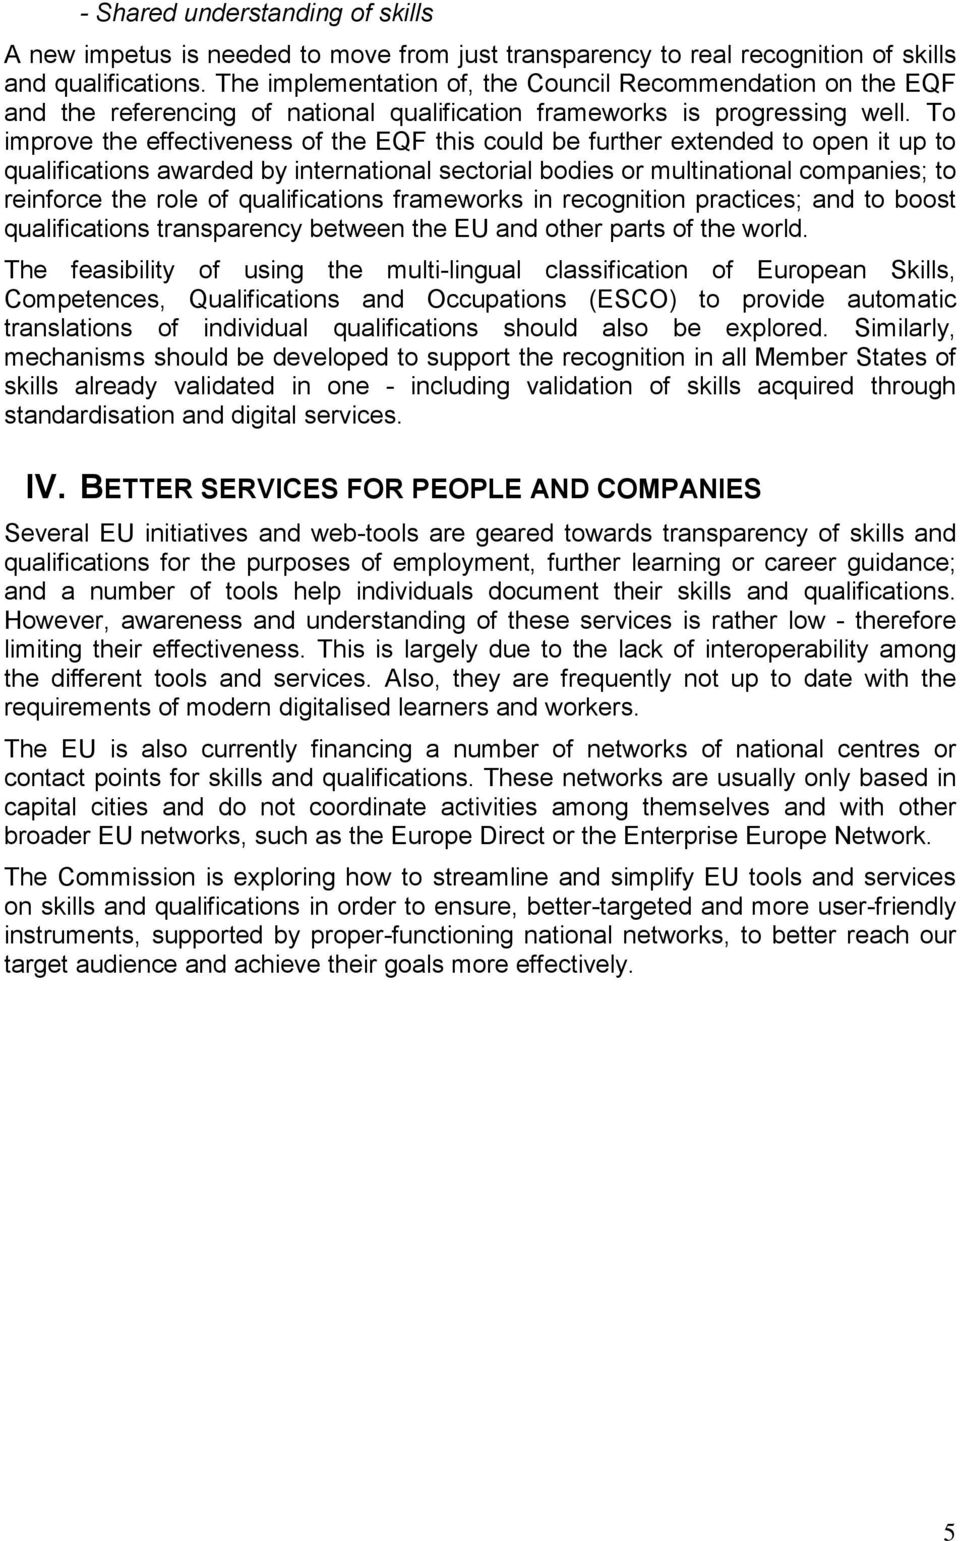 To improve the effectiveness of the EQF this could be further extended to open it up to qualifications awarded by international sectorial bodies or multinational companies; to reinforce the role of